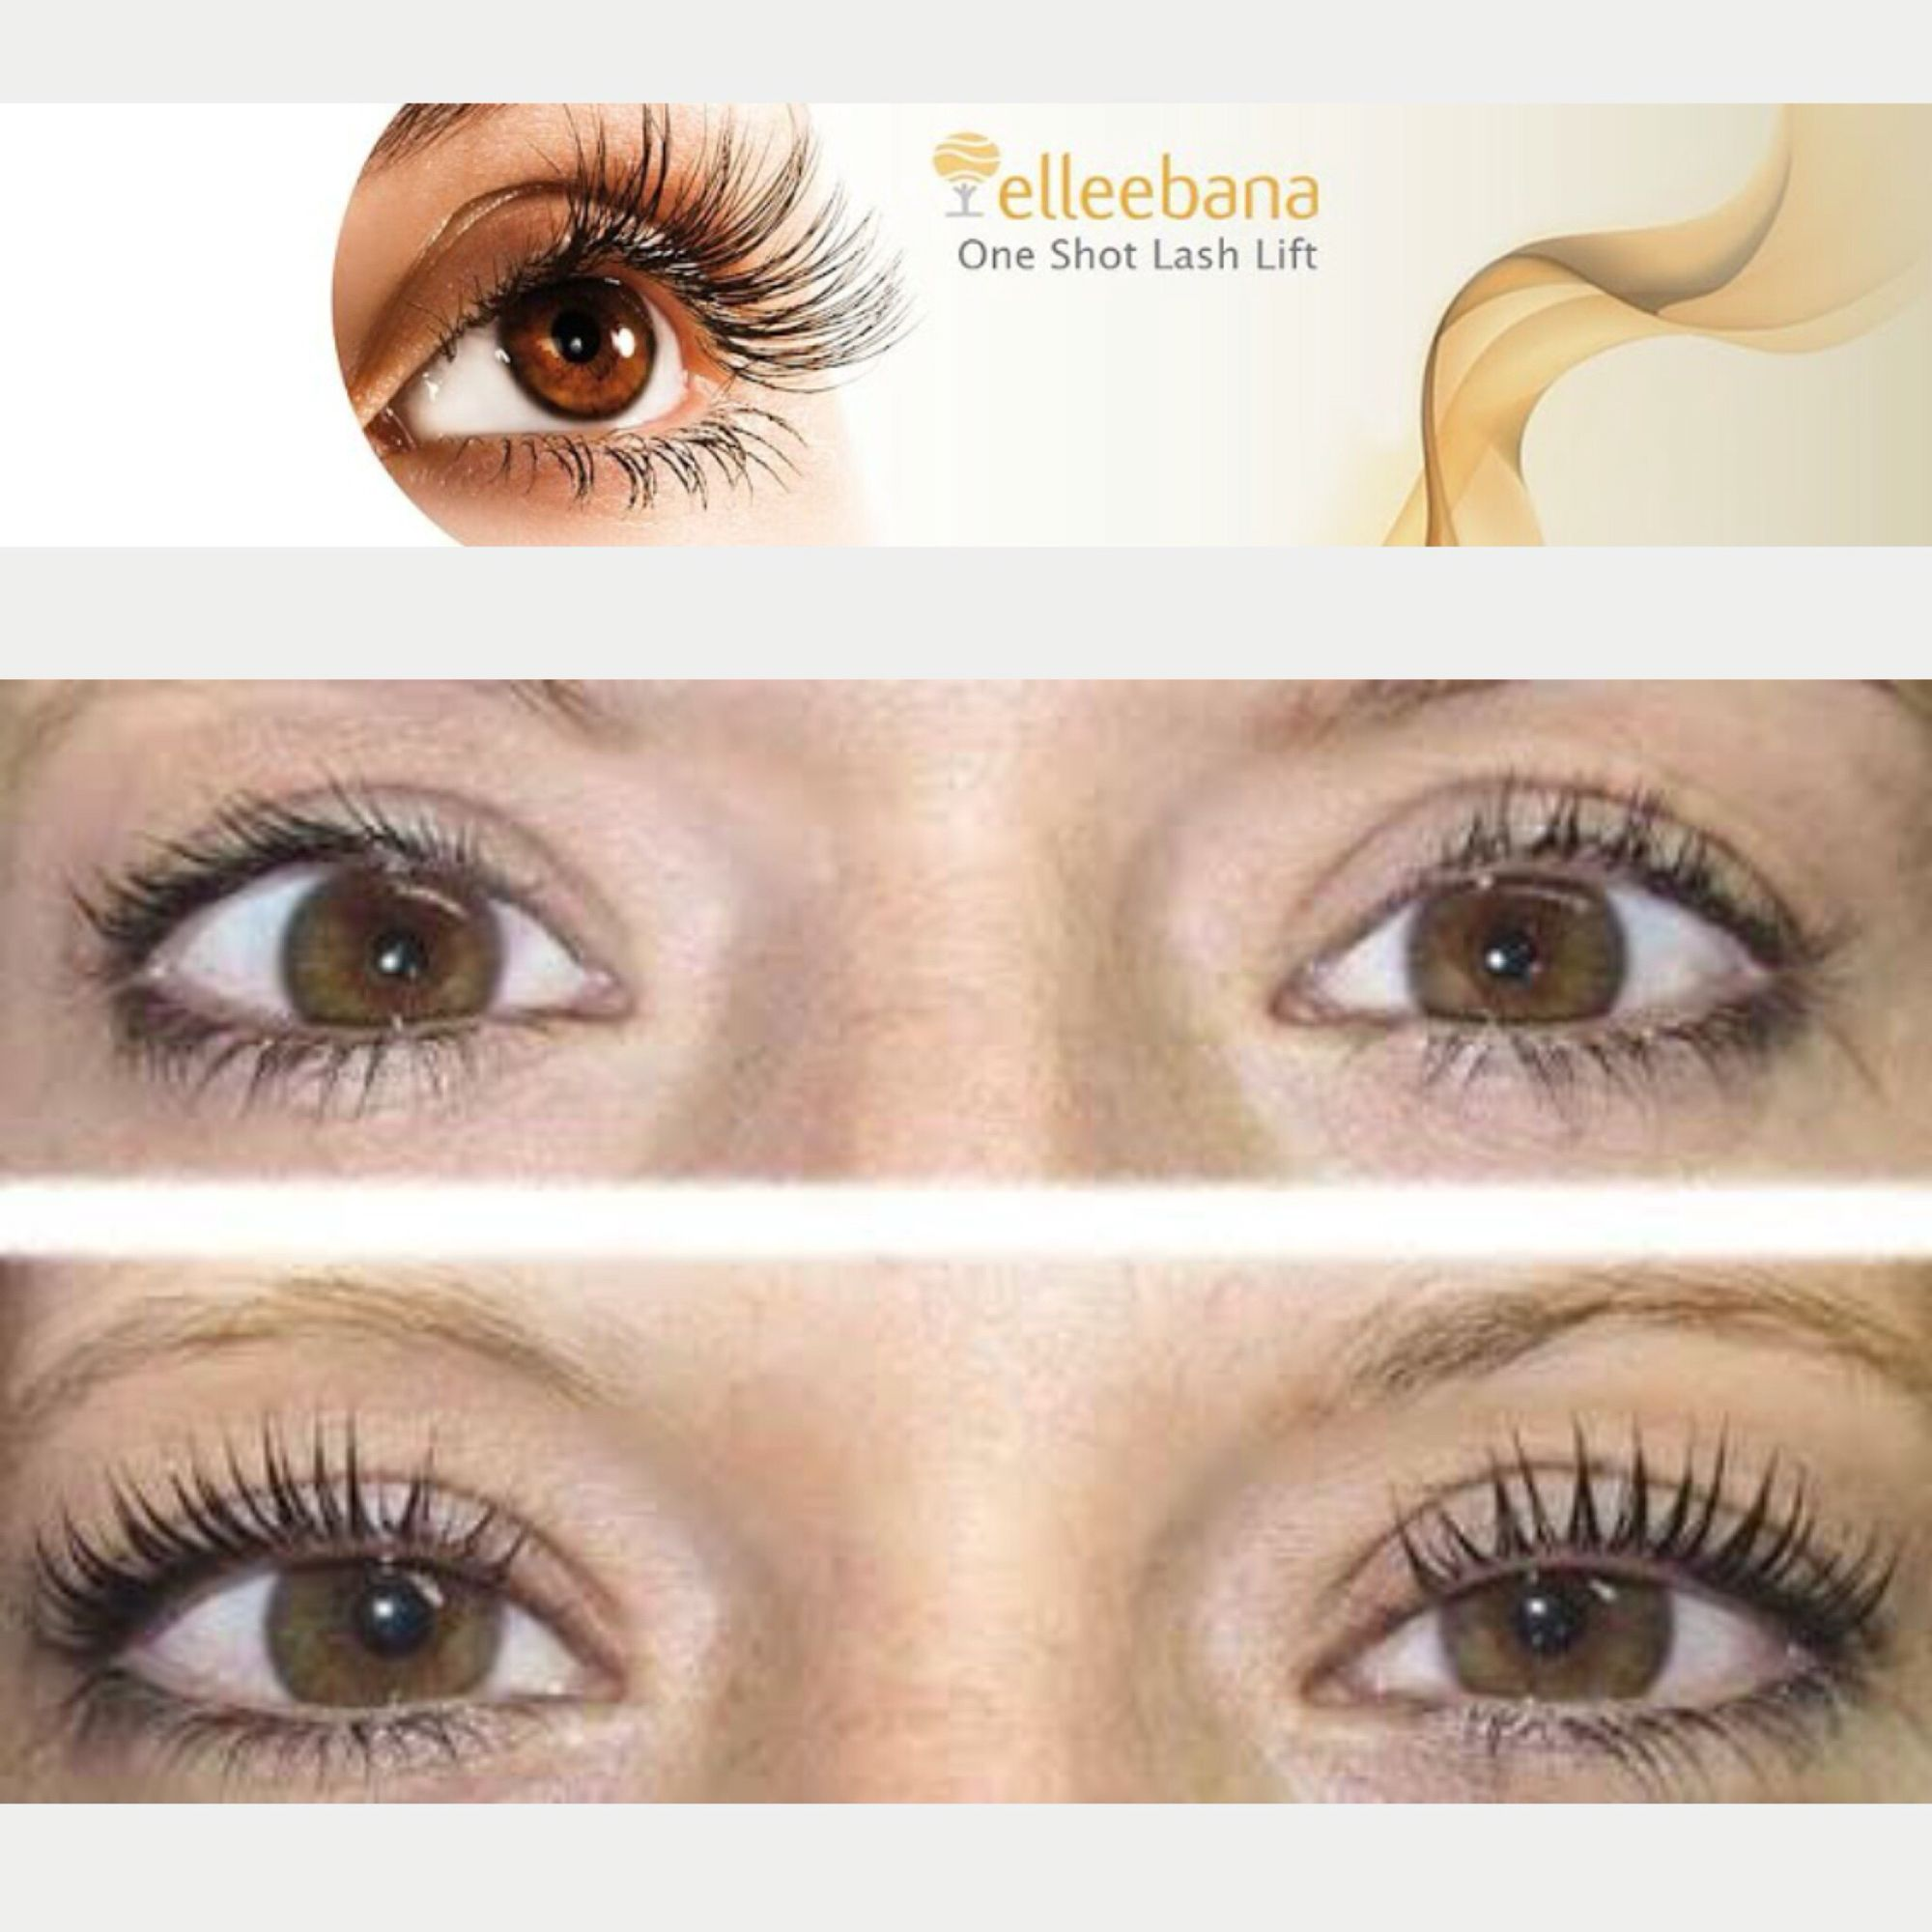 Offer For The Month Of February Eyelash Perm And Eyelash Tint